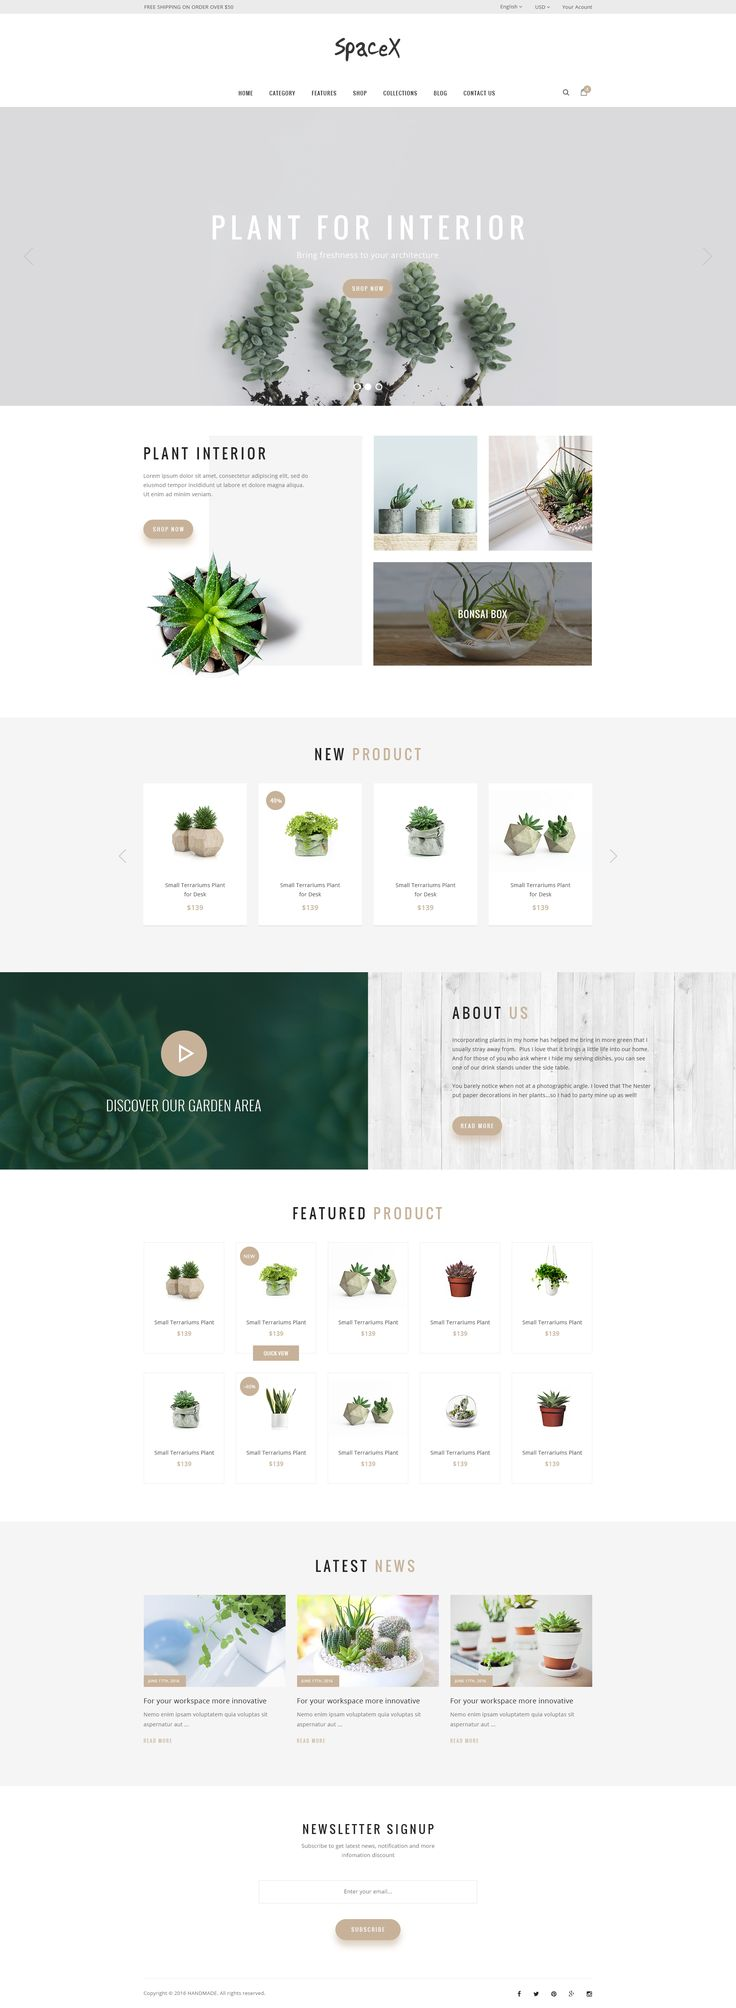 SpaceX Architecture and Interior Design Agency PSD Template • Download ➝ https://themeforest.net/item/spacex-architecture-and-interior-design-agency-psd-template/18276339?ref=pxcr